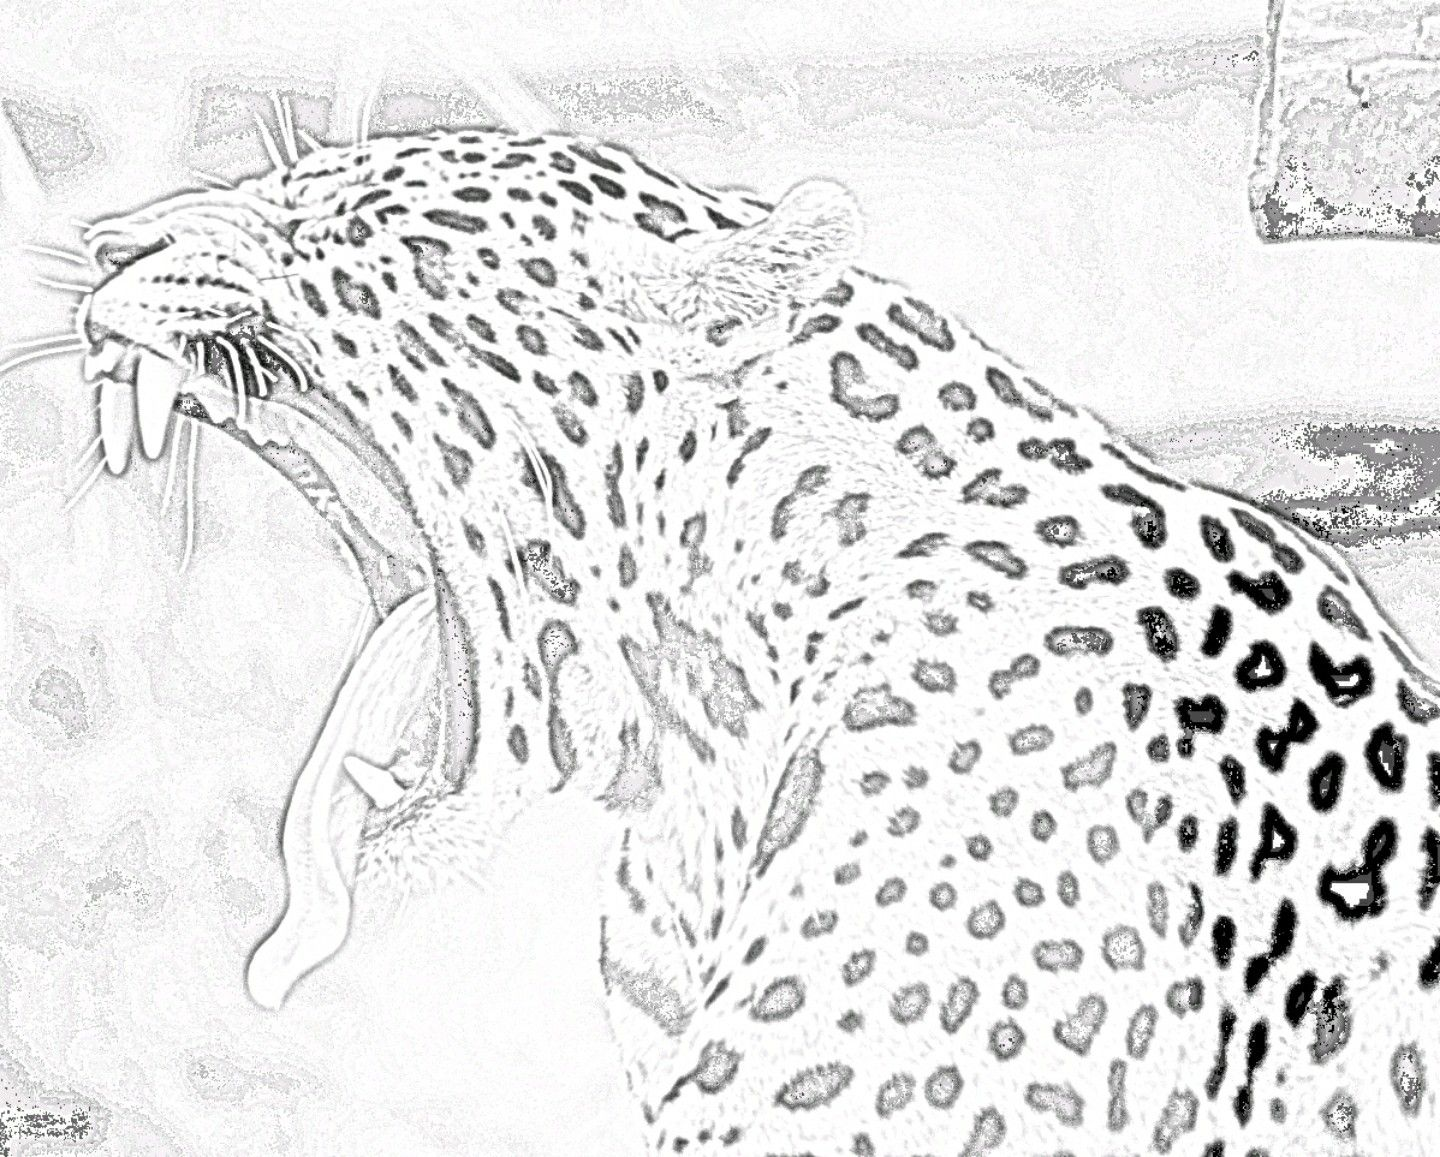 Pin By Color The World On Zoo Animal Coloring Pages Zoo Animal Coloring Pages Animal Coloring Pages Zoo Animals